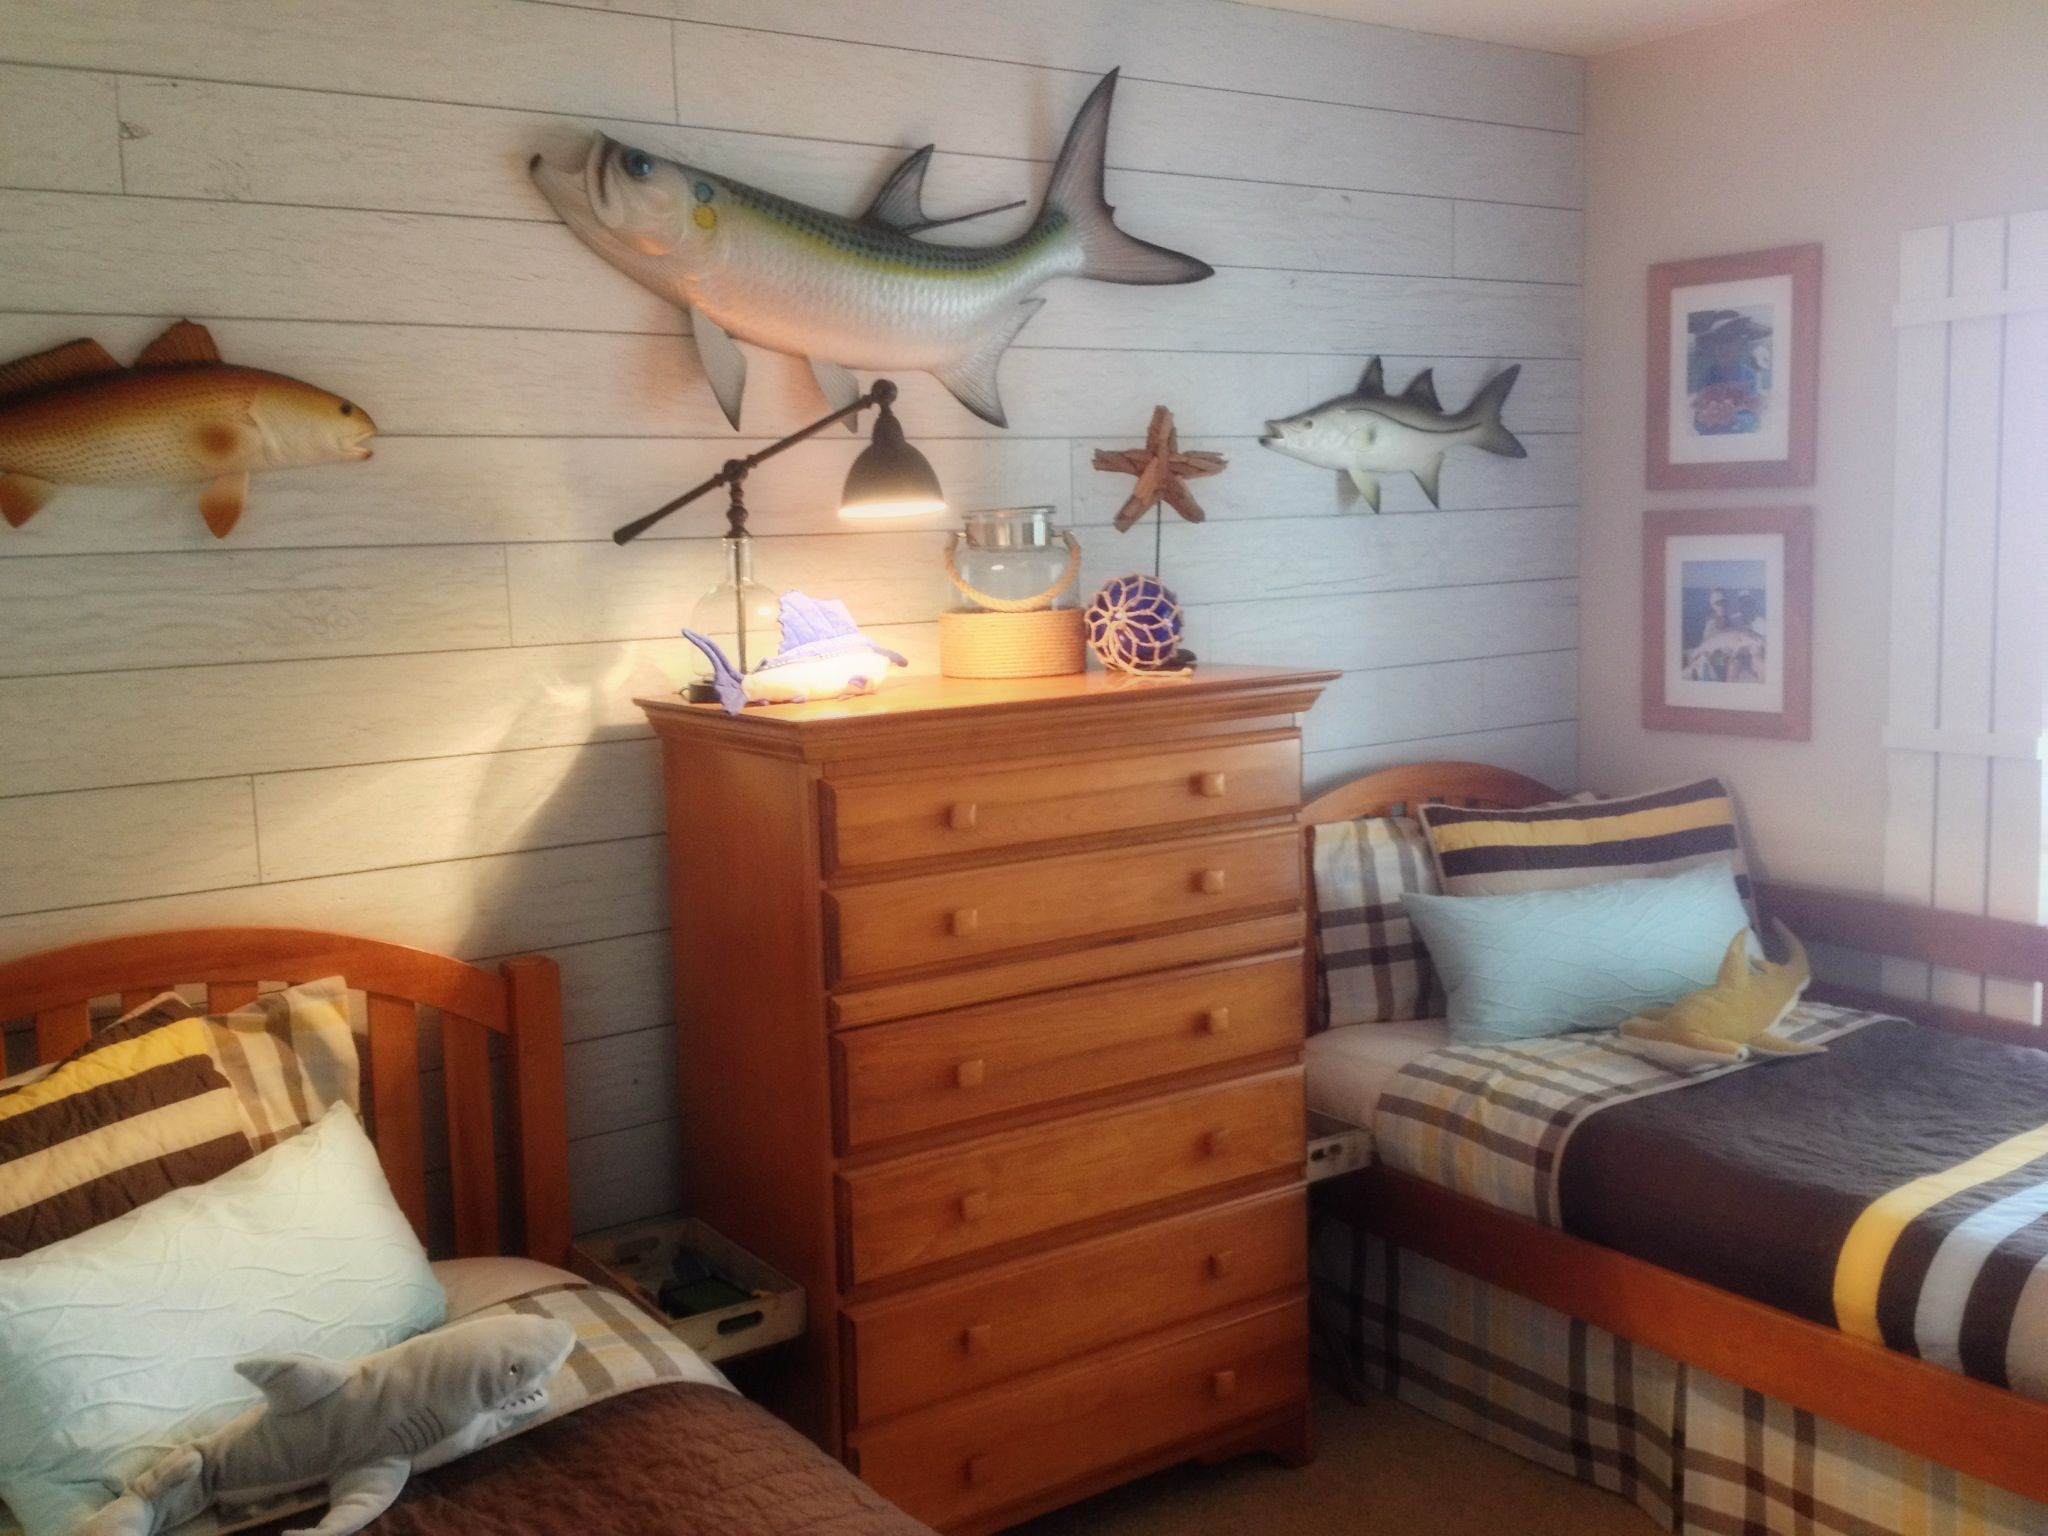 45 Ways to Add Character and Personality to a Boy's Bedroom | The Happy Housie -  Boys Inshore Saltwater Fishing Bedroom #Boys #Bedroom #Fishing  - #add #bedroom #Boys #boysbedroom #character #happy #housie #personality #sofabeddiy #ways #woodenbeddiy